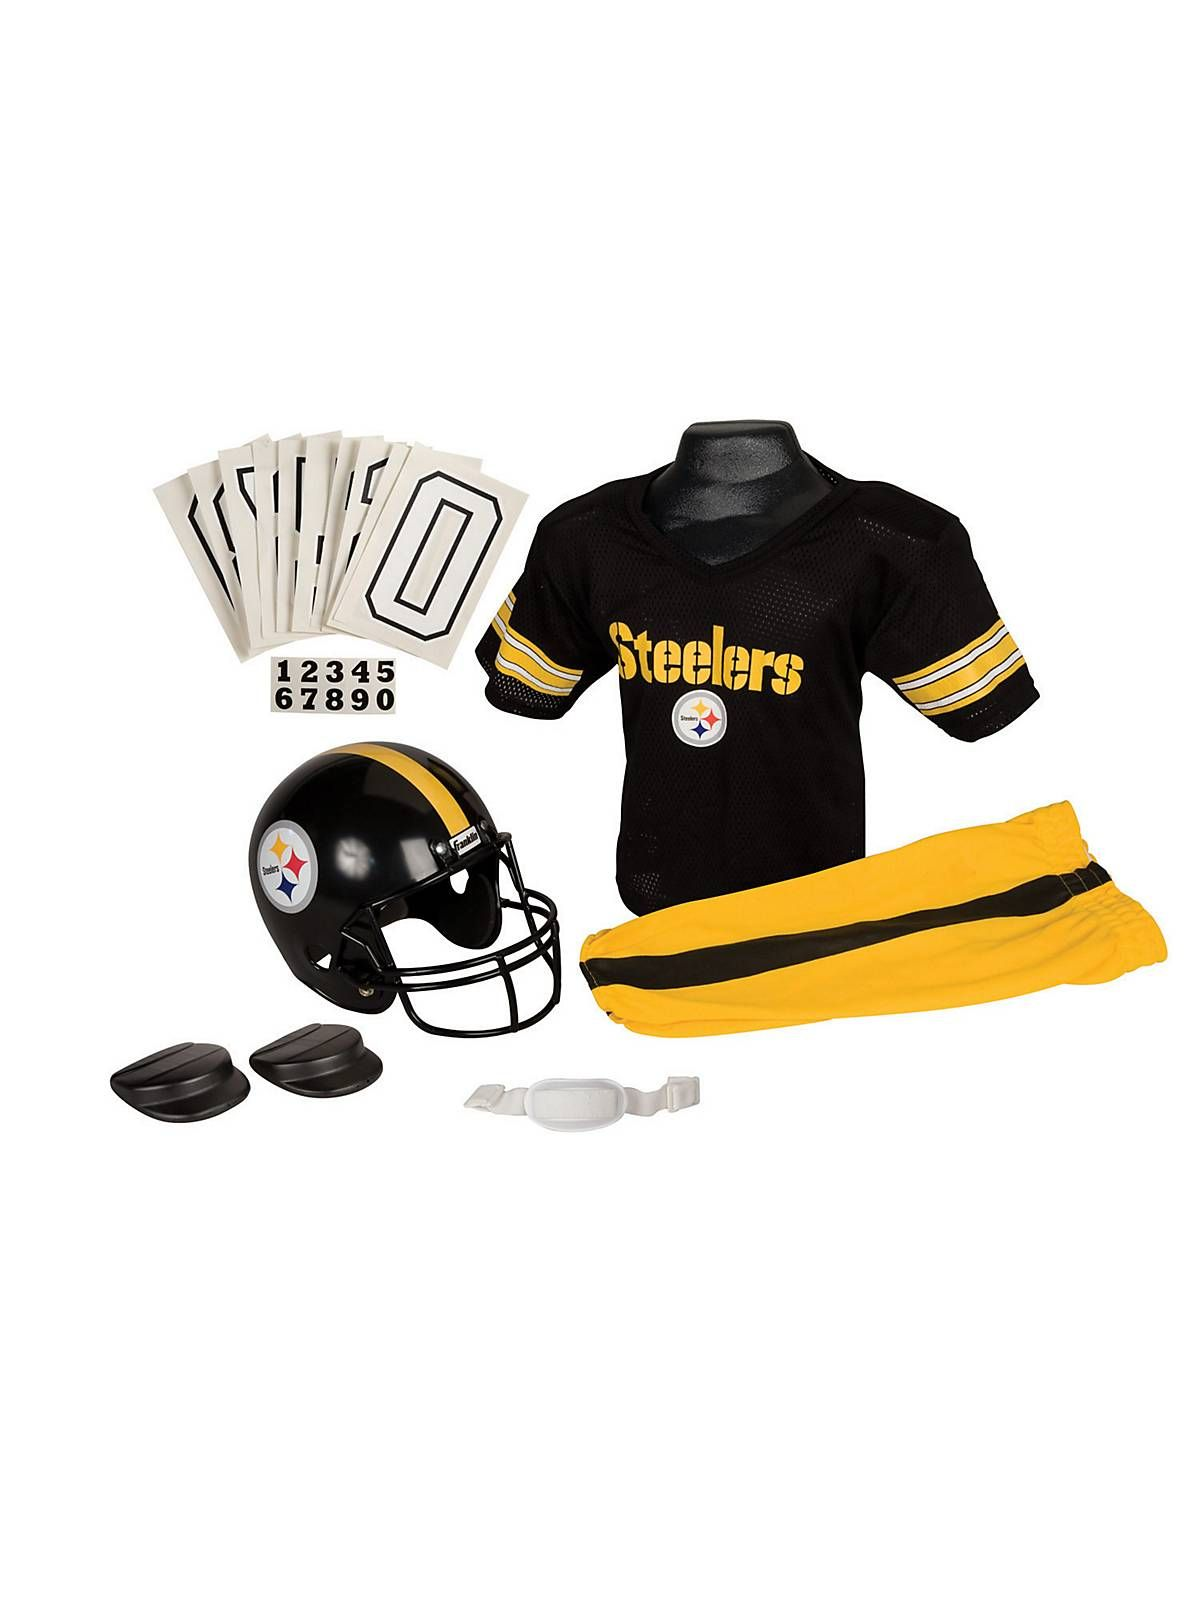 Pittsburgh Steelers Youth NFL Deluxe Helmet and Uniform Set (Medium) a3a8e79f6